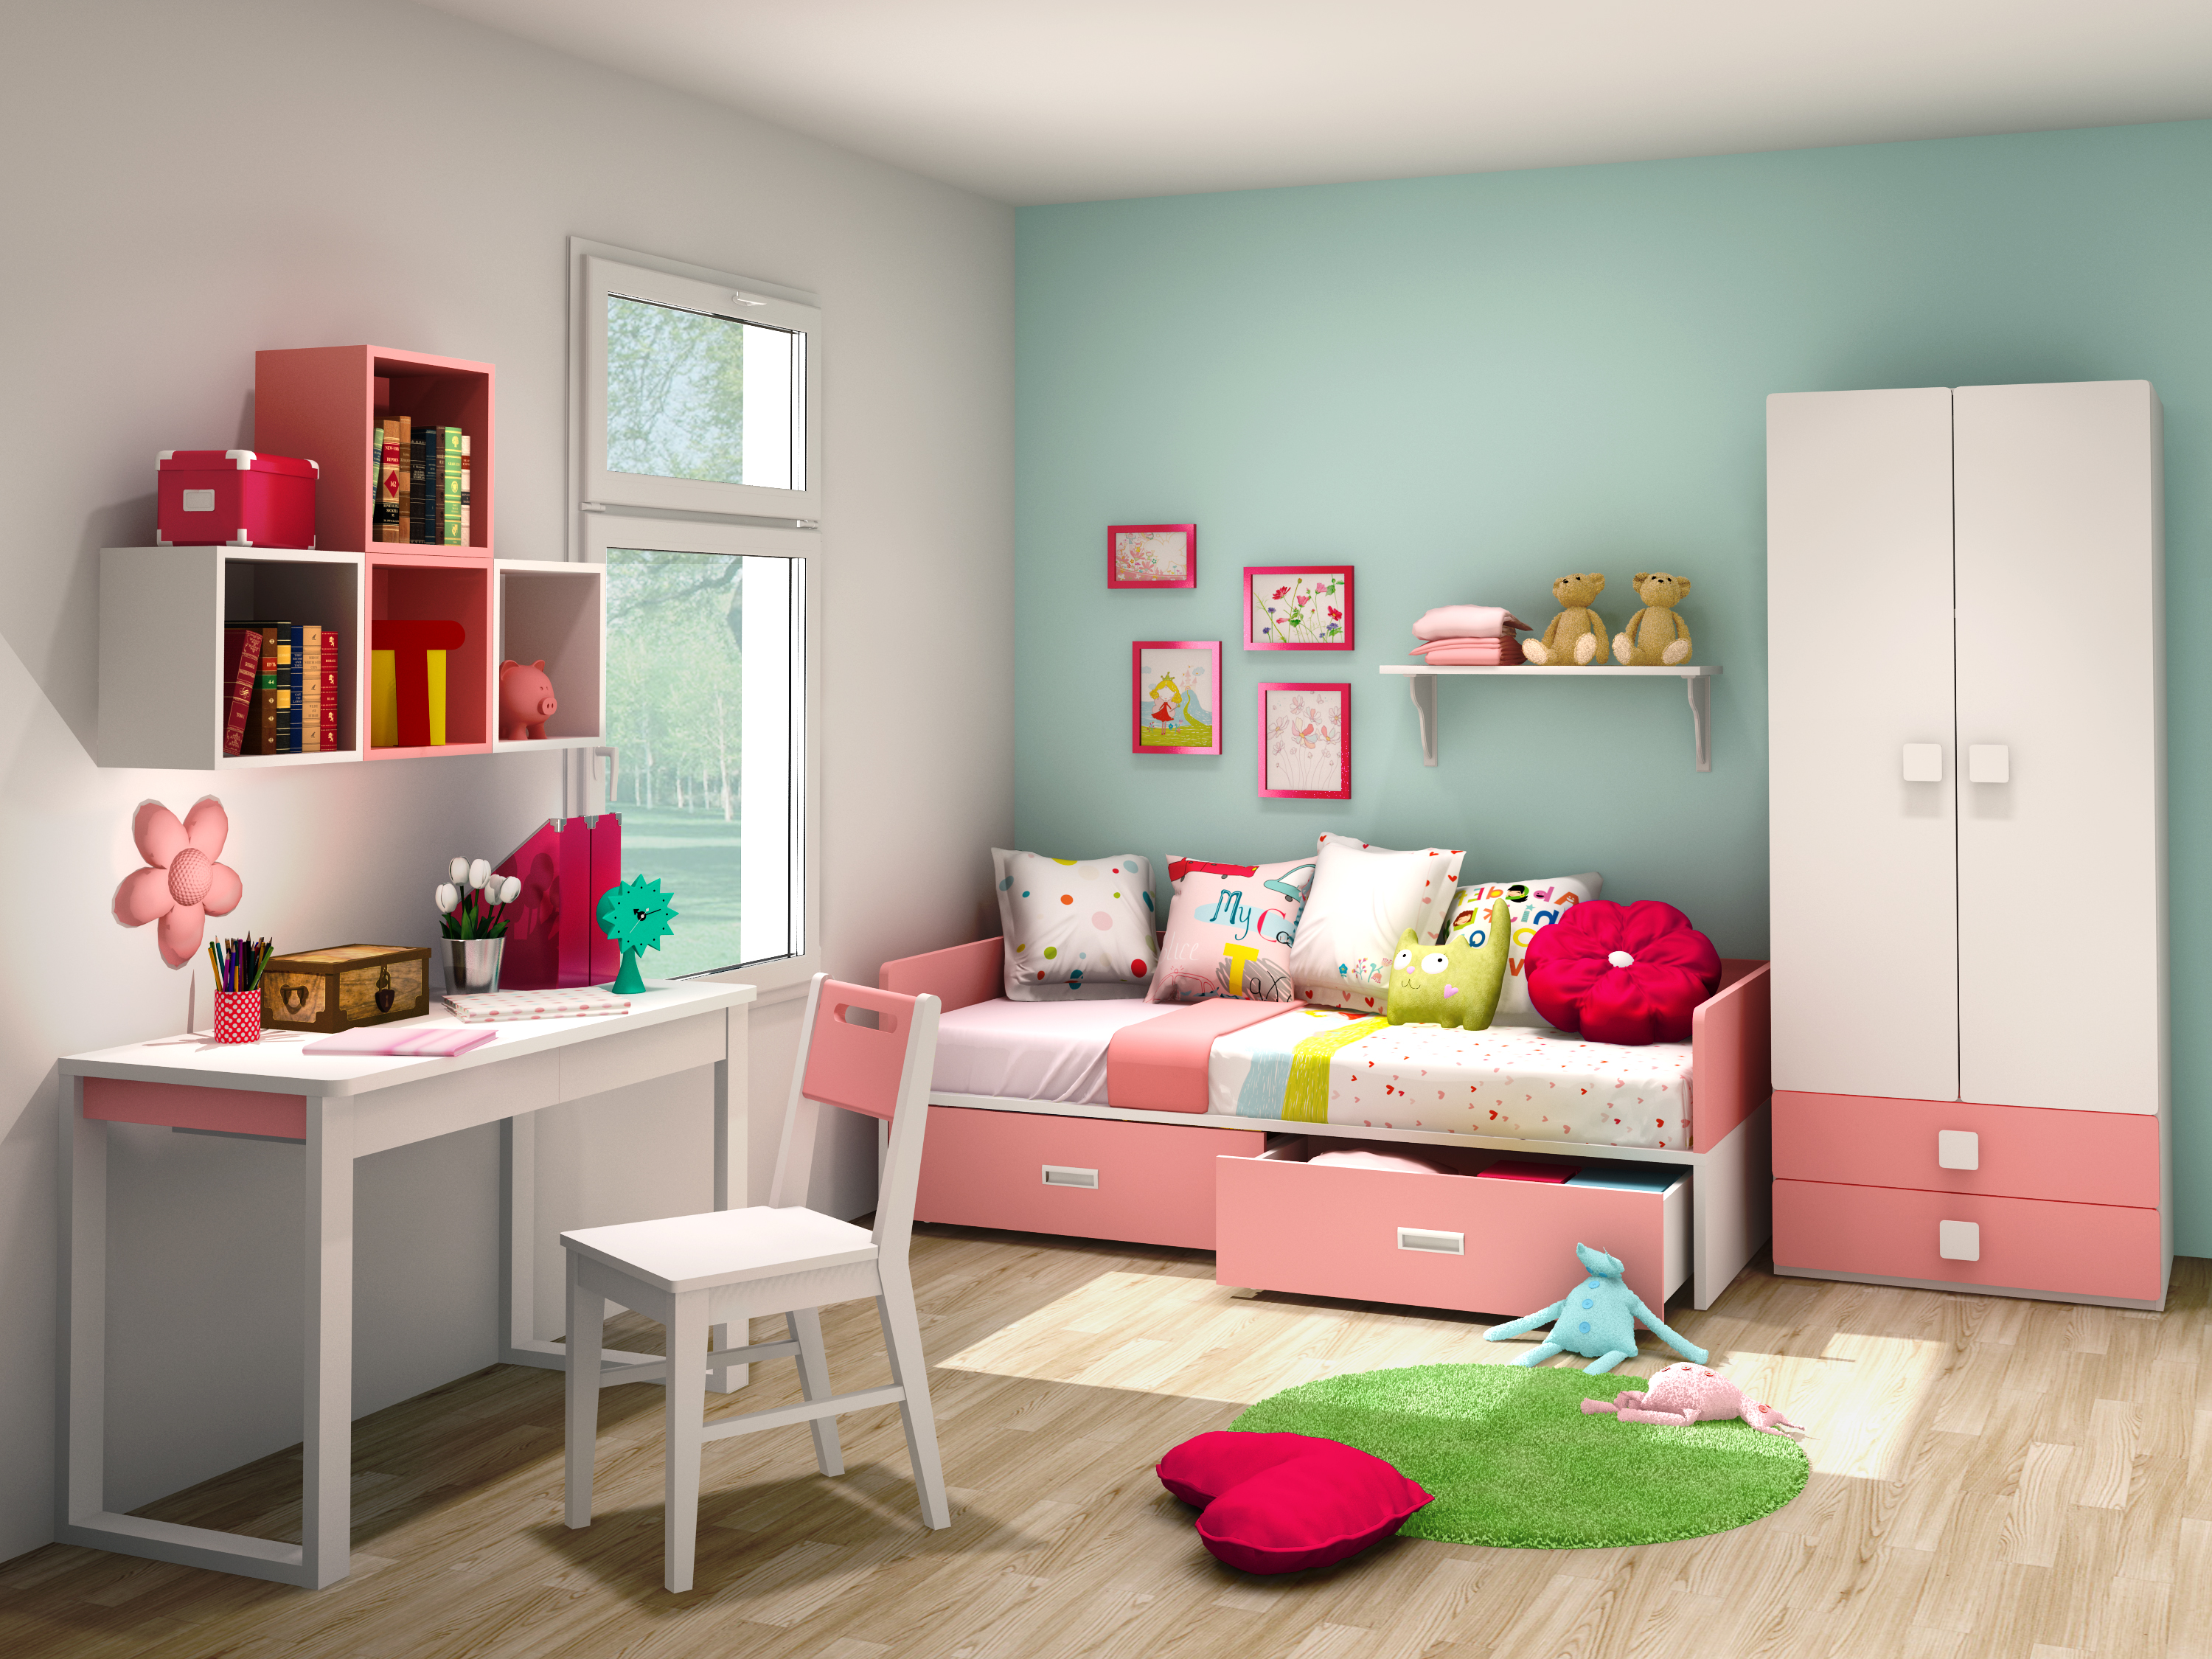 Popular Furniture Options Amongst Parents These Days Alex Daisy Blogs